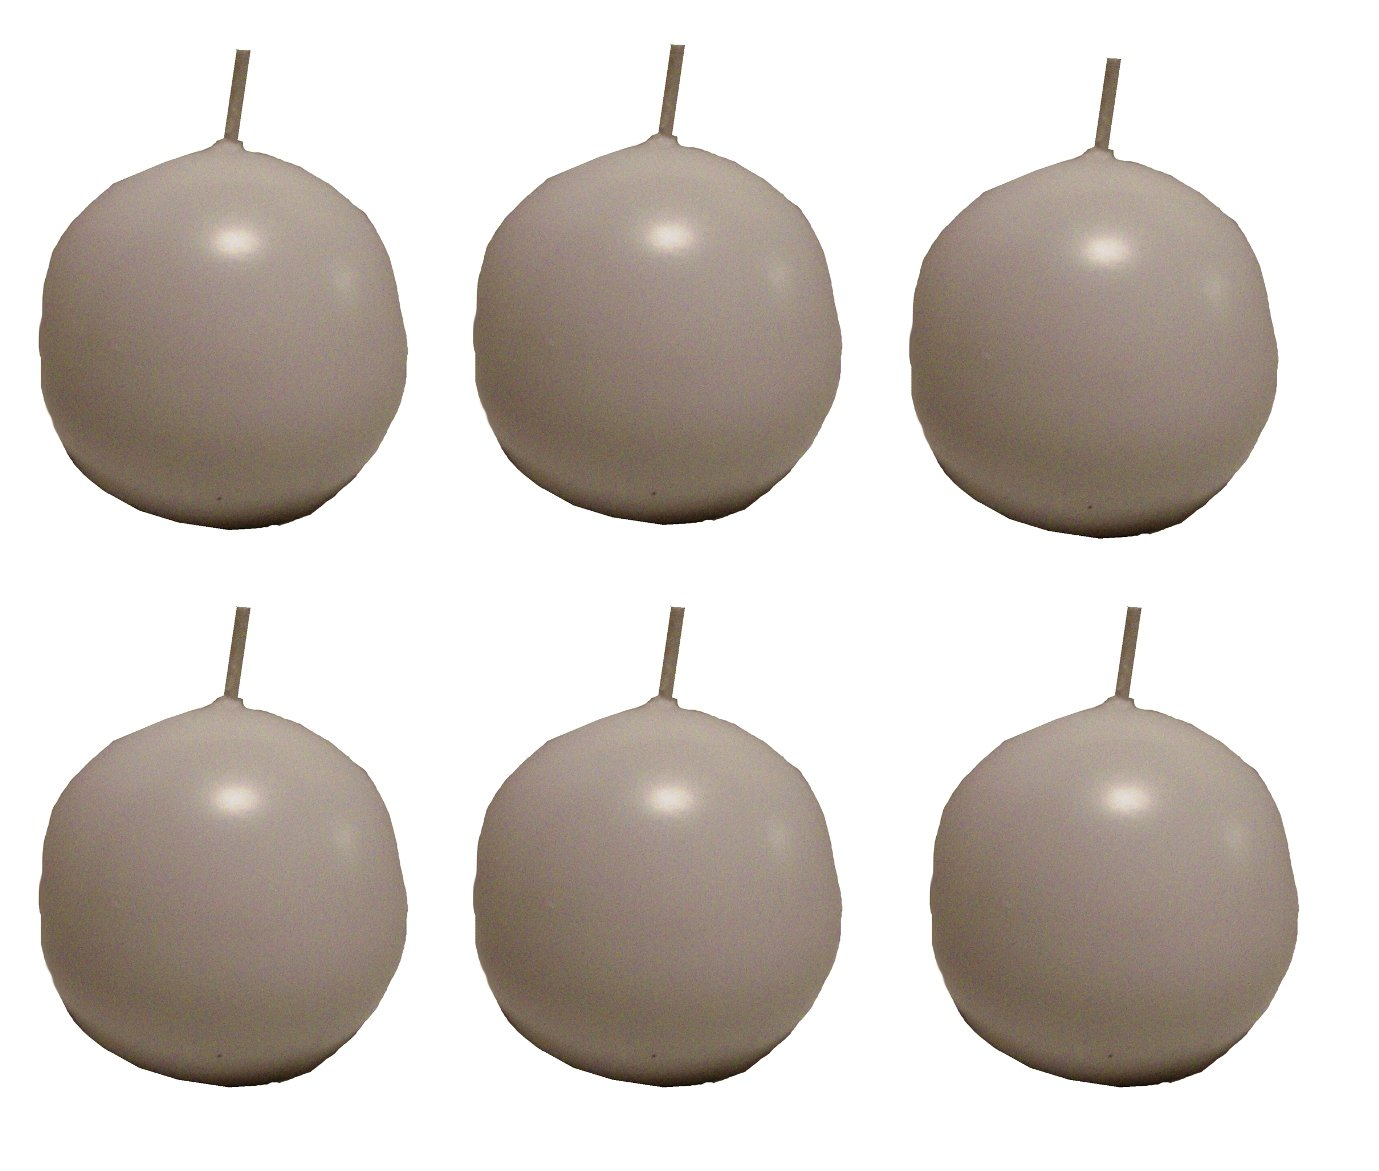 Biedermann & Sons 2-3/4-Inch Round-Shaped Candles, Burgundy, Set of 6 CBC-70BG